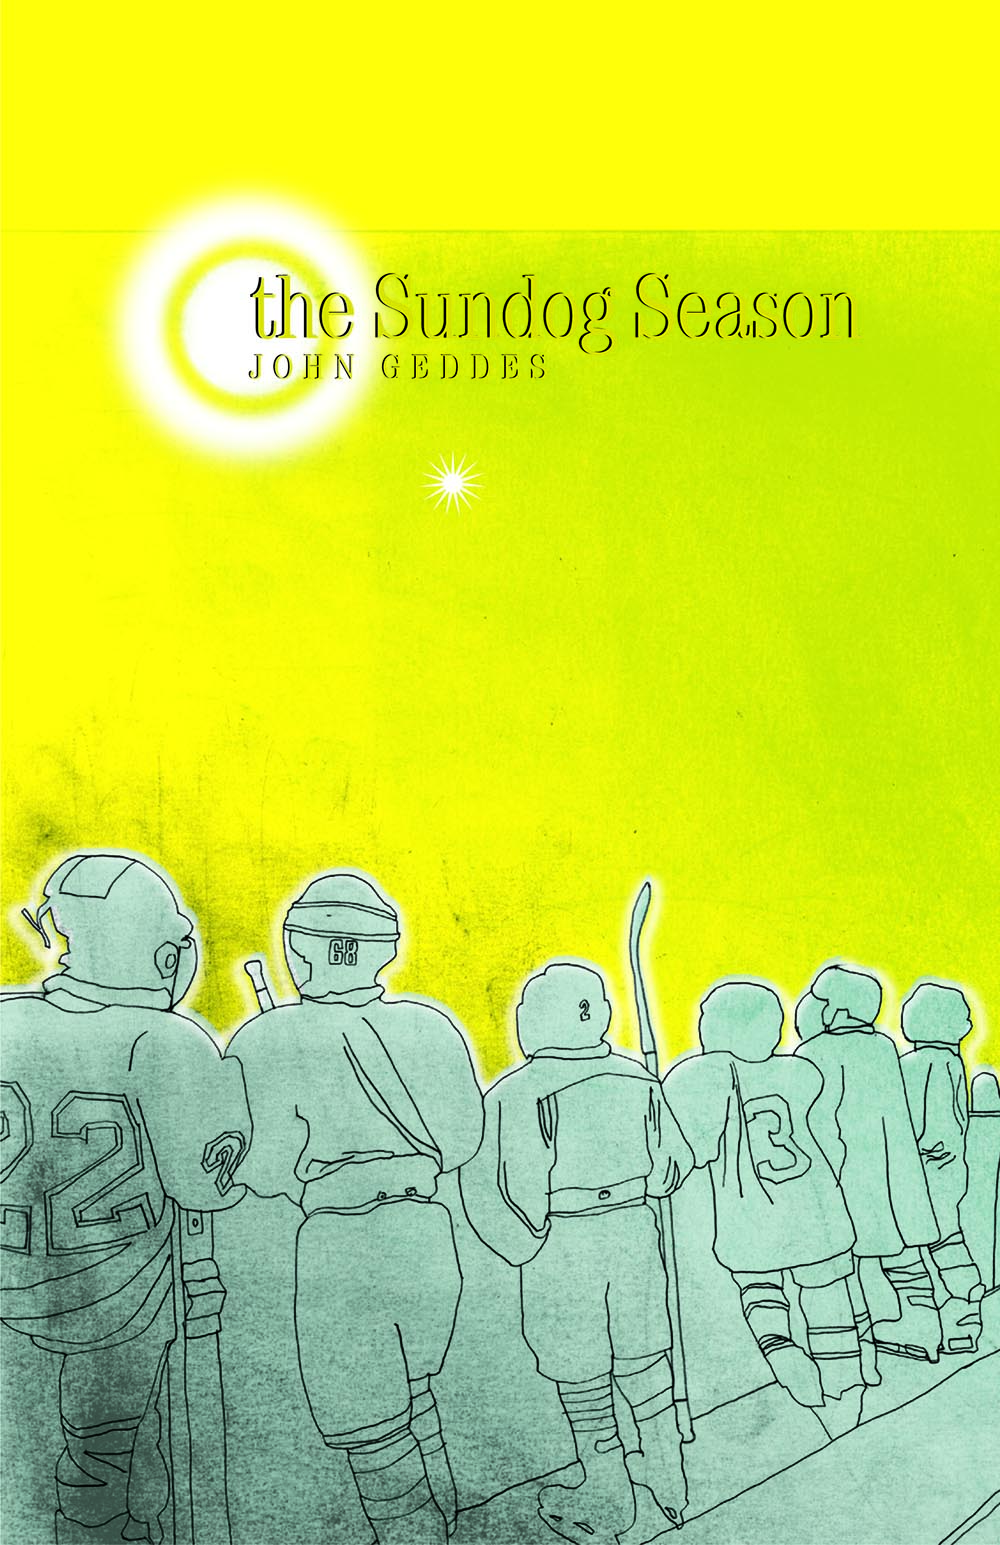 The Sundog Season by John Geddes